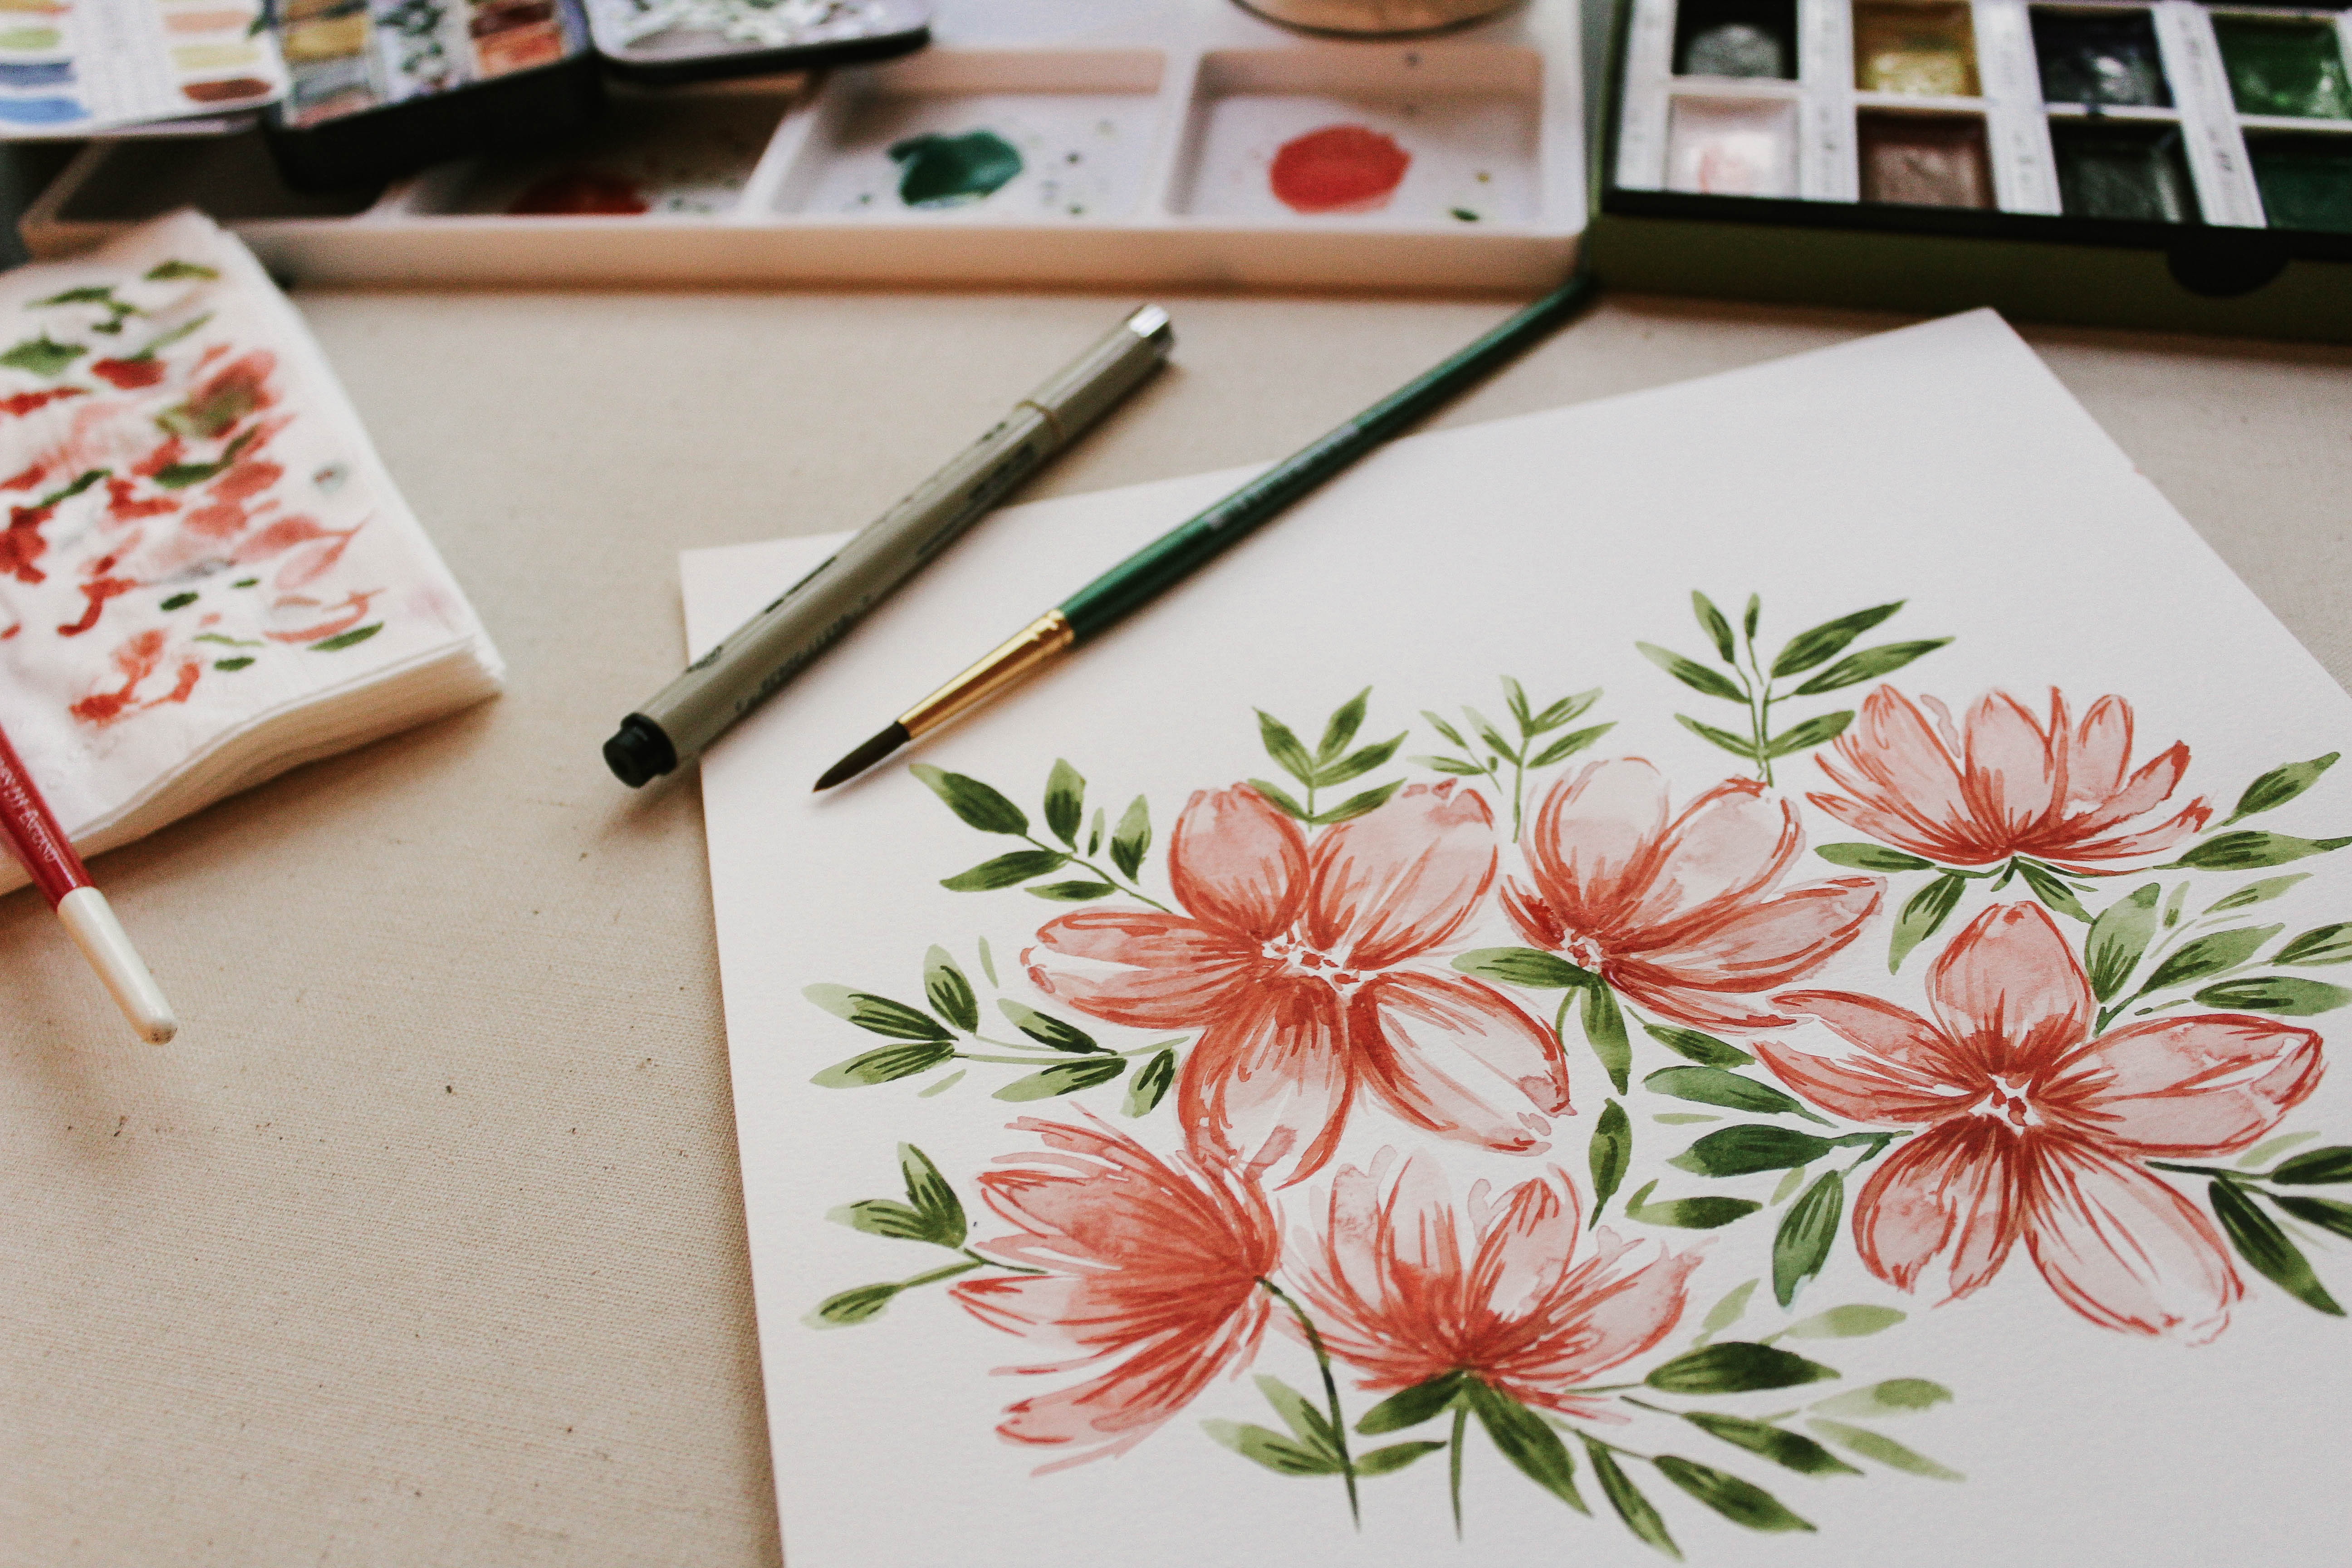 Drawing Flowers Paints Brushes